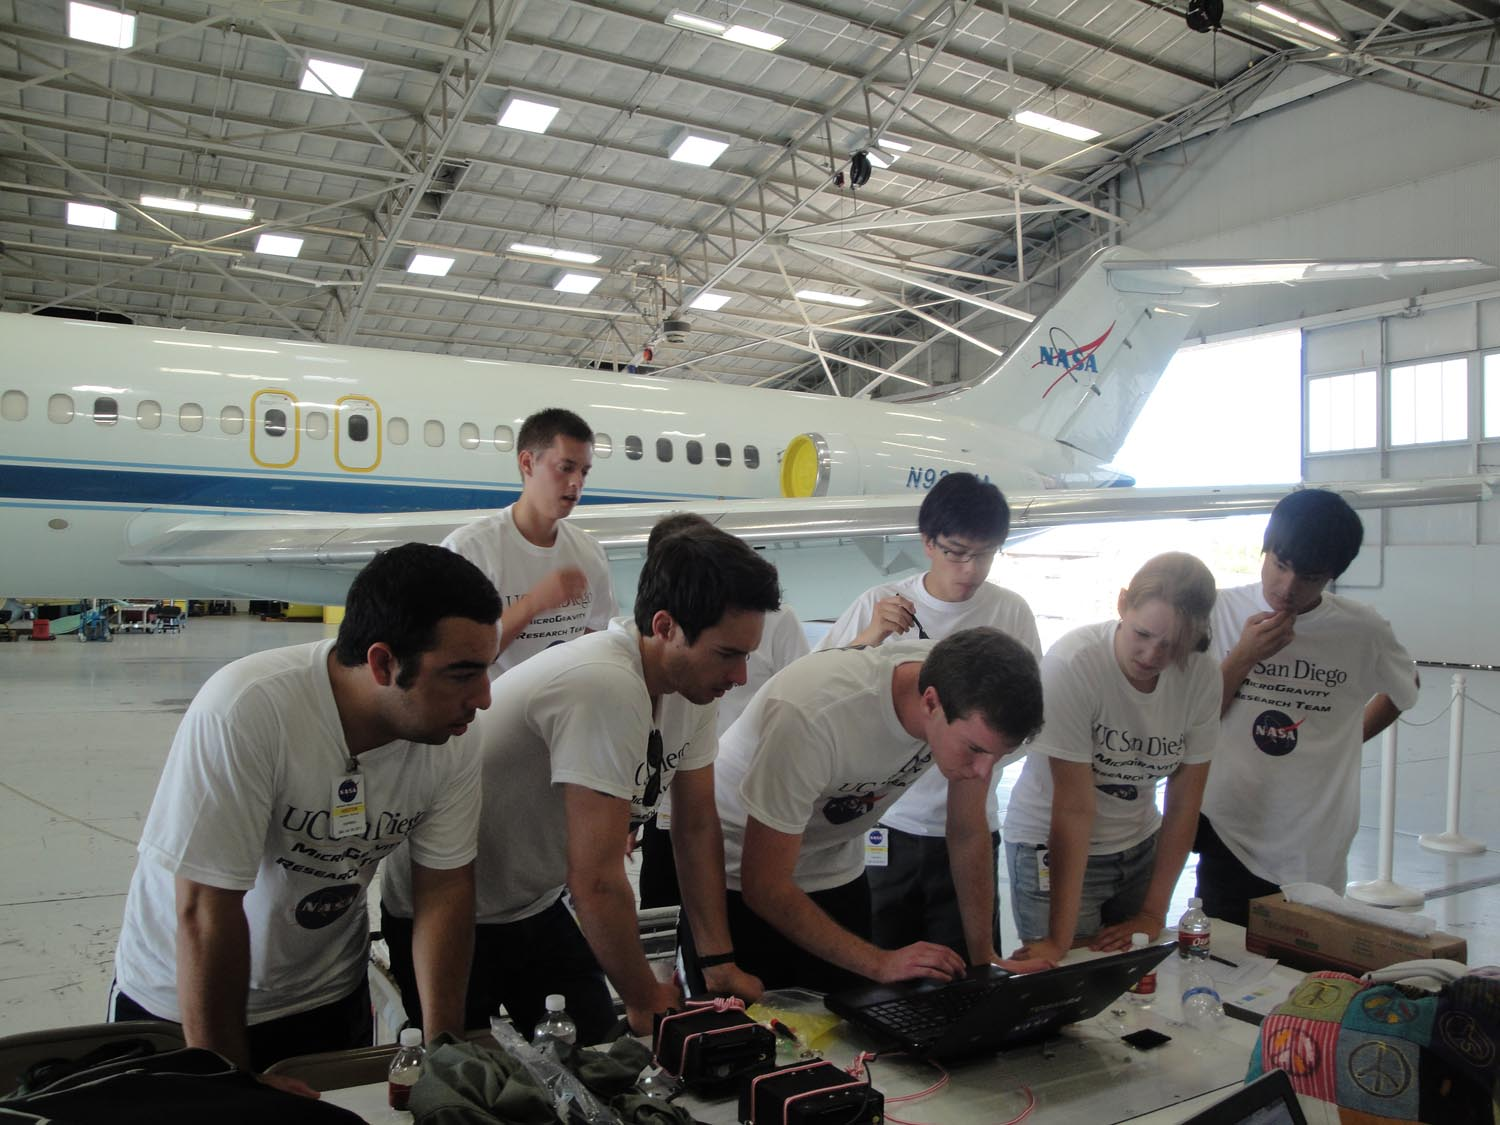 UCSD Microgravity Team: Flight Day